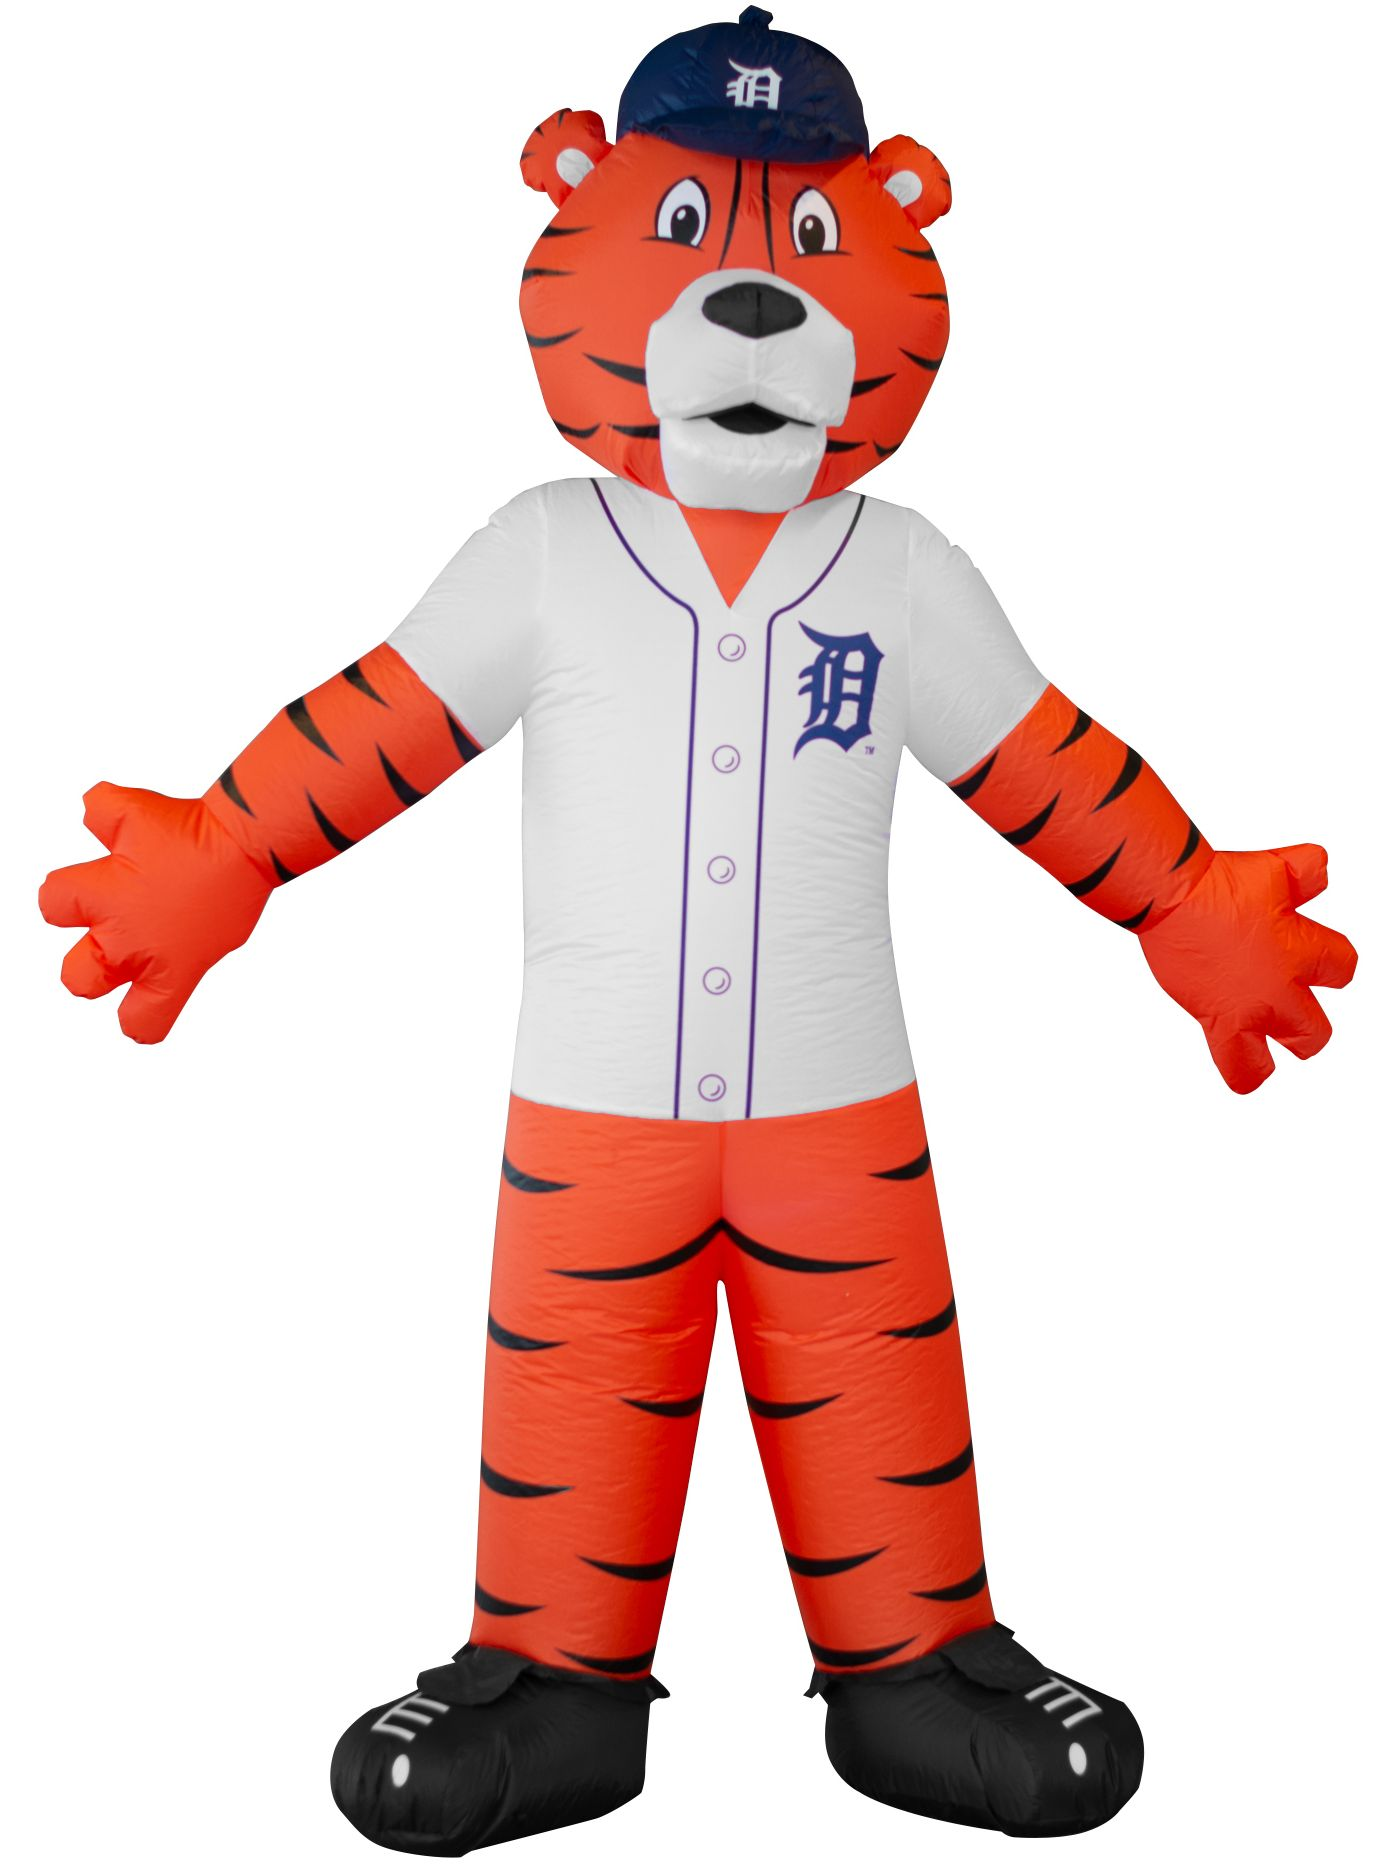 Boelter Detroit Tigers Inflatable Mascot